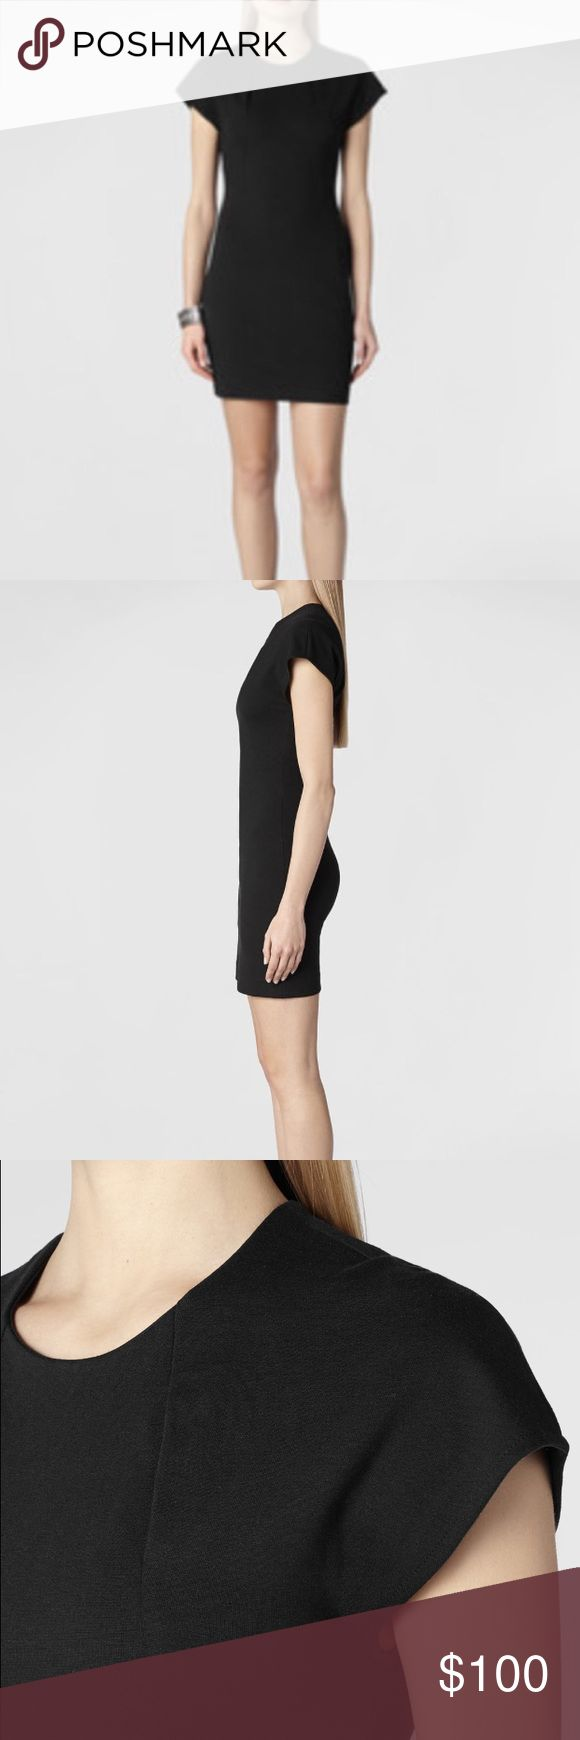 AllSaints Daphne Dress A perfect LBD! This dress is made of a modal/cotton/spandex blend.  It has cap sleeves.  The material is thick enough but still shows off your curves.  US 8 but fits more like a 6 All Saints Dresses Mini